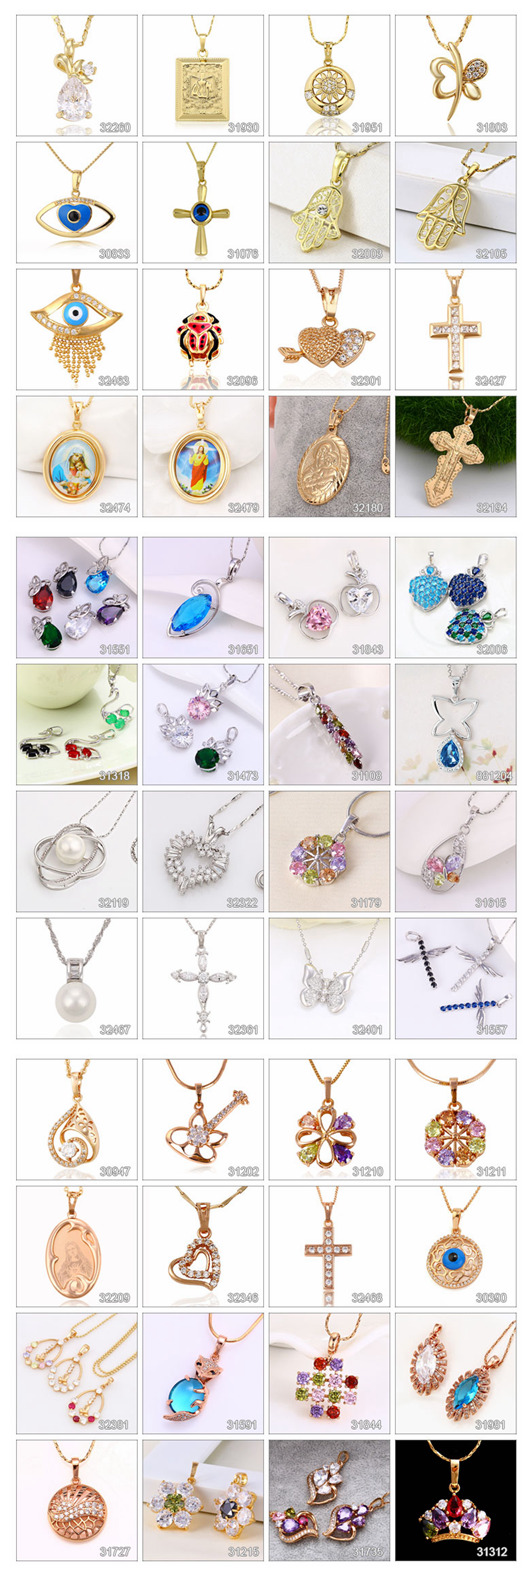 31673 Fashion Crystal Jewelry Chain Pendant in Rhoudium Color